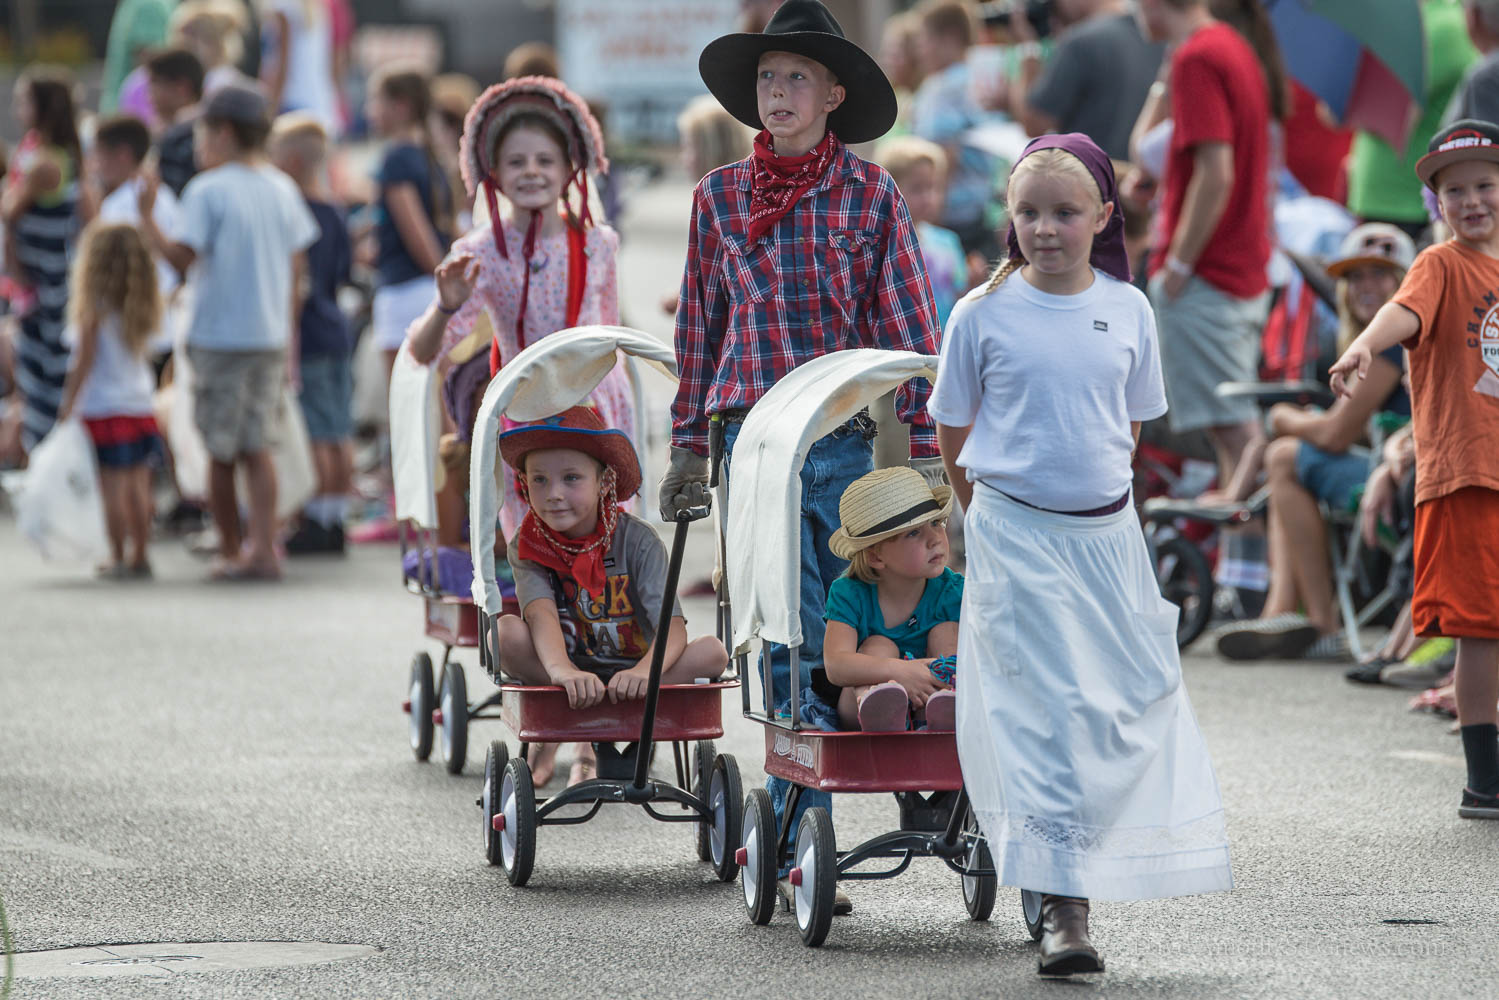 The Days of '47 Parade Dixie Pioneer Day Celebration, Washington, Utah, July 24, 2014 | Photo by Dave Amodt, St. George News